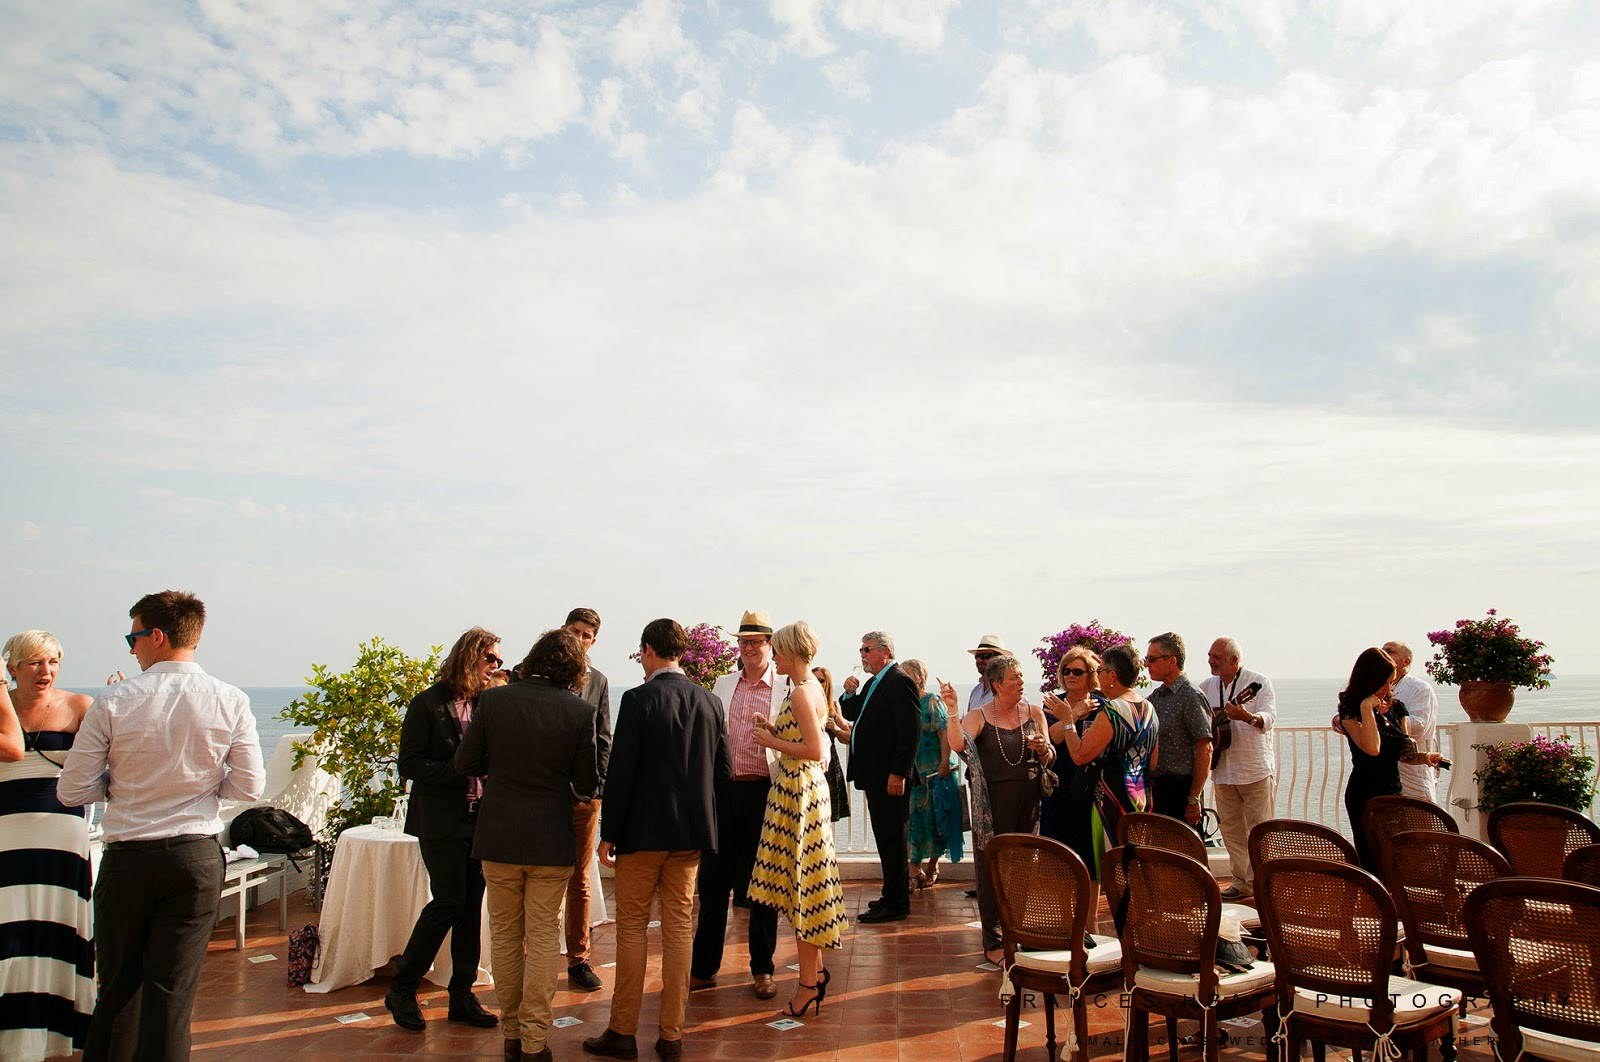 Wedding reception at the Hotel Marincanto in Positano